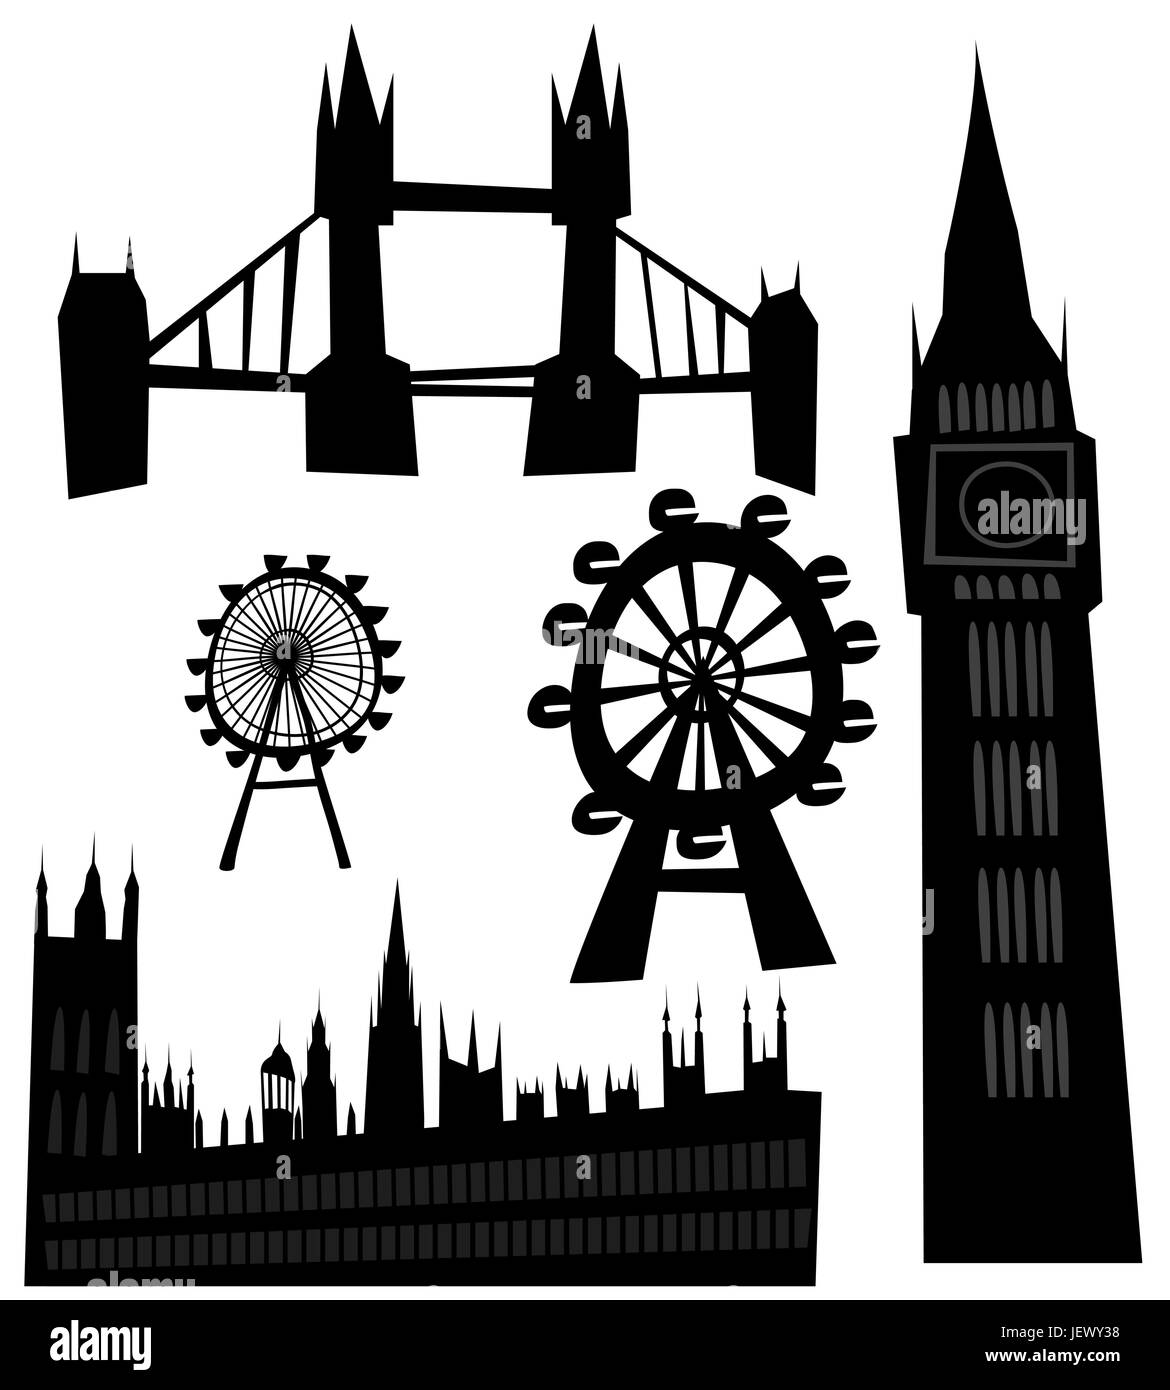 famous, tourism, sights, london, sign, landmark, vector, tower, travel, - Stock Image